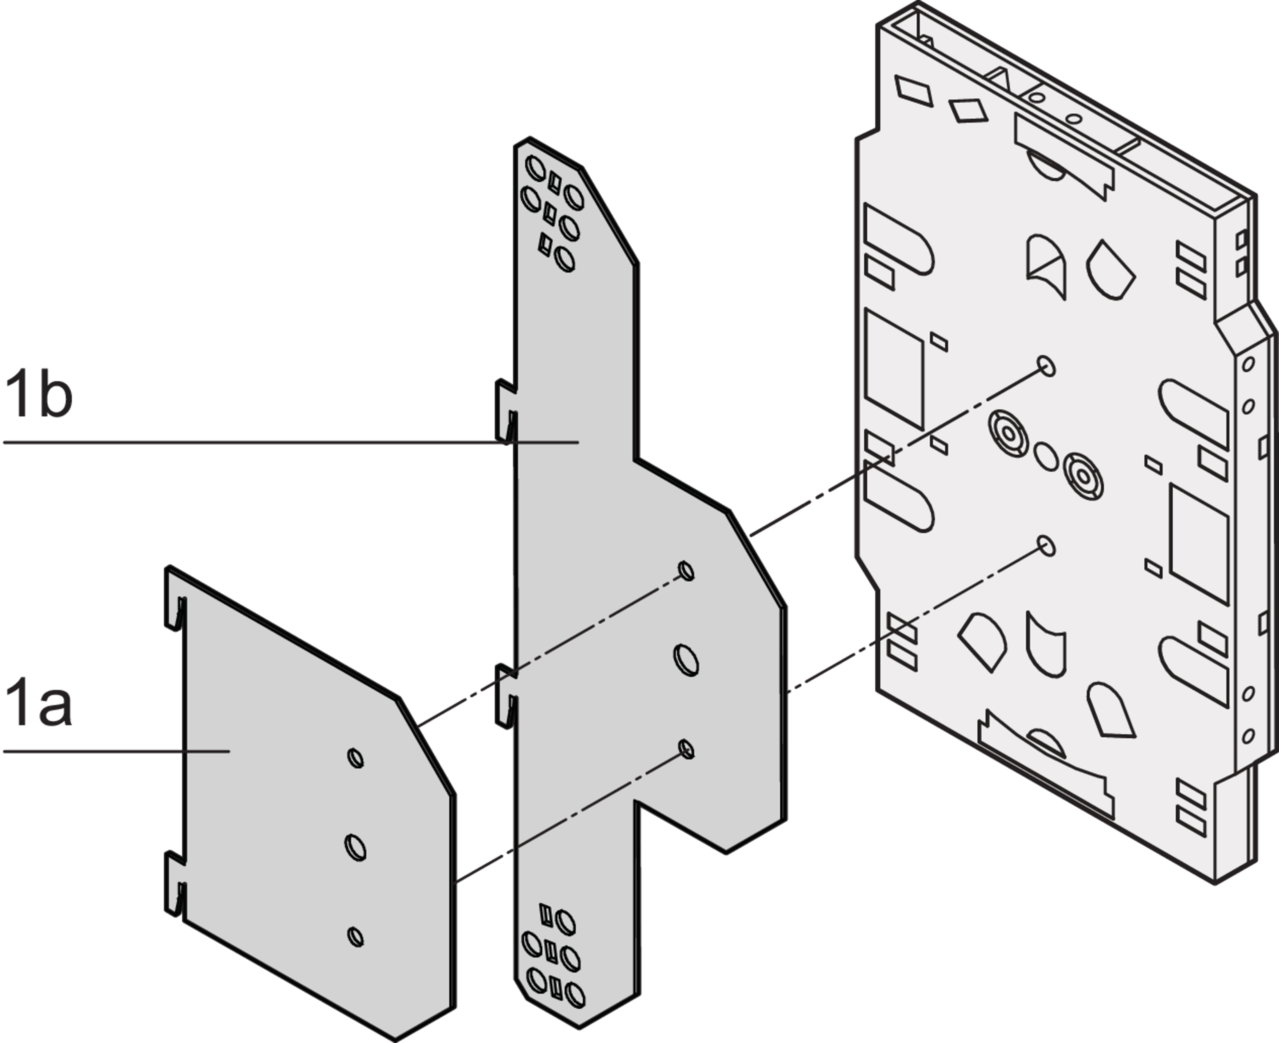 Image for Insertion plate for splicing cassettes from Schroff | Europe, Middle East, Africa and India